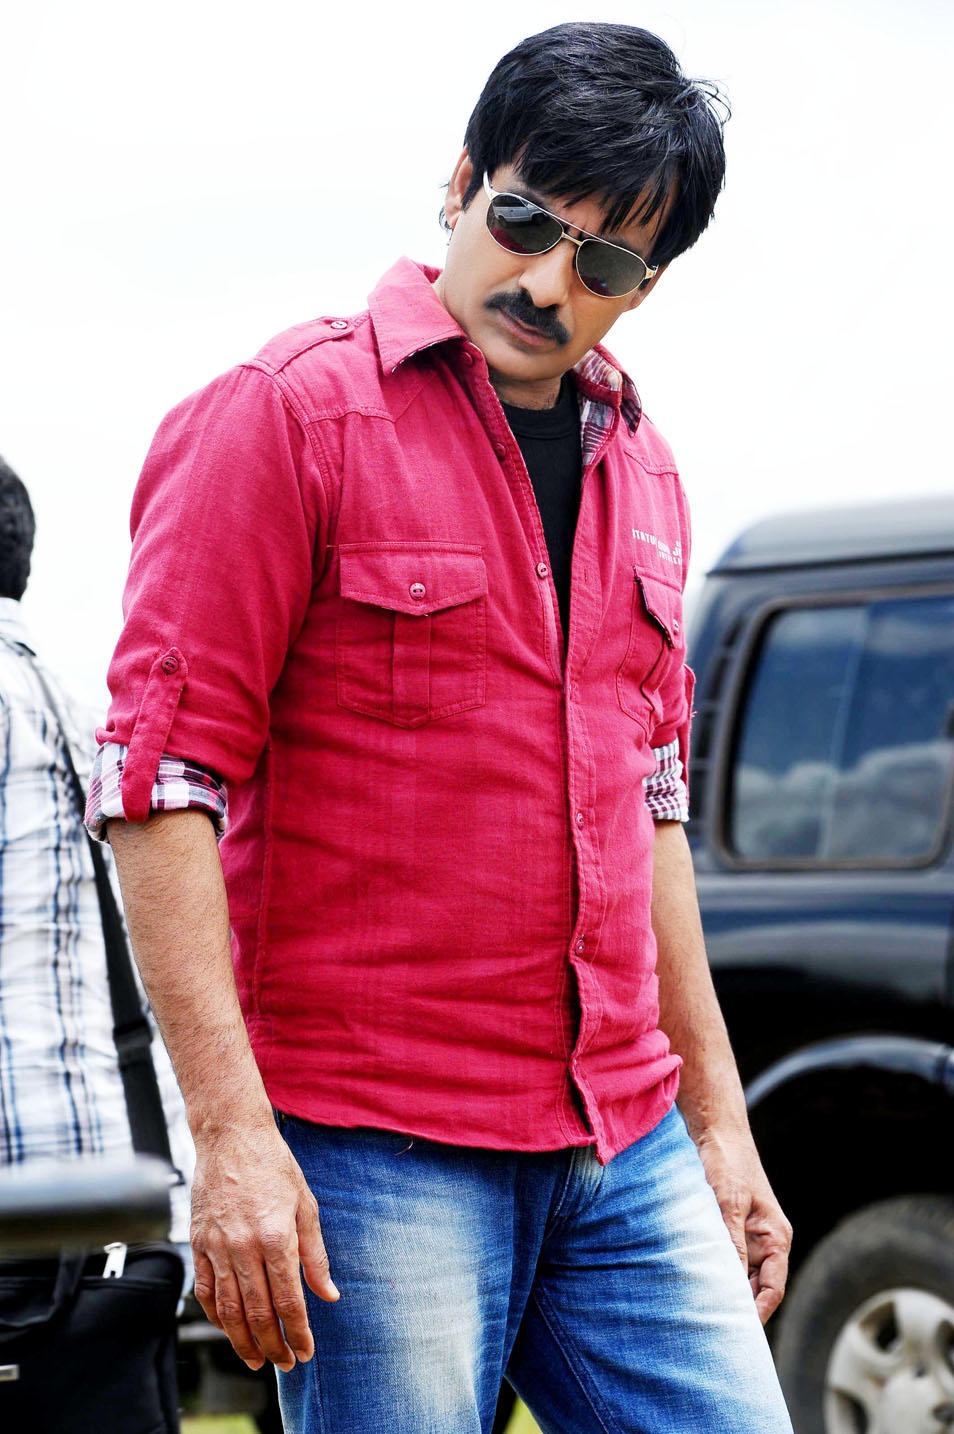 tollywood news |tollywood wallpapers: ravi teja first look stills